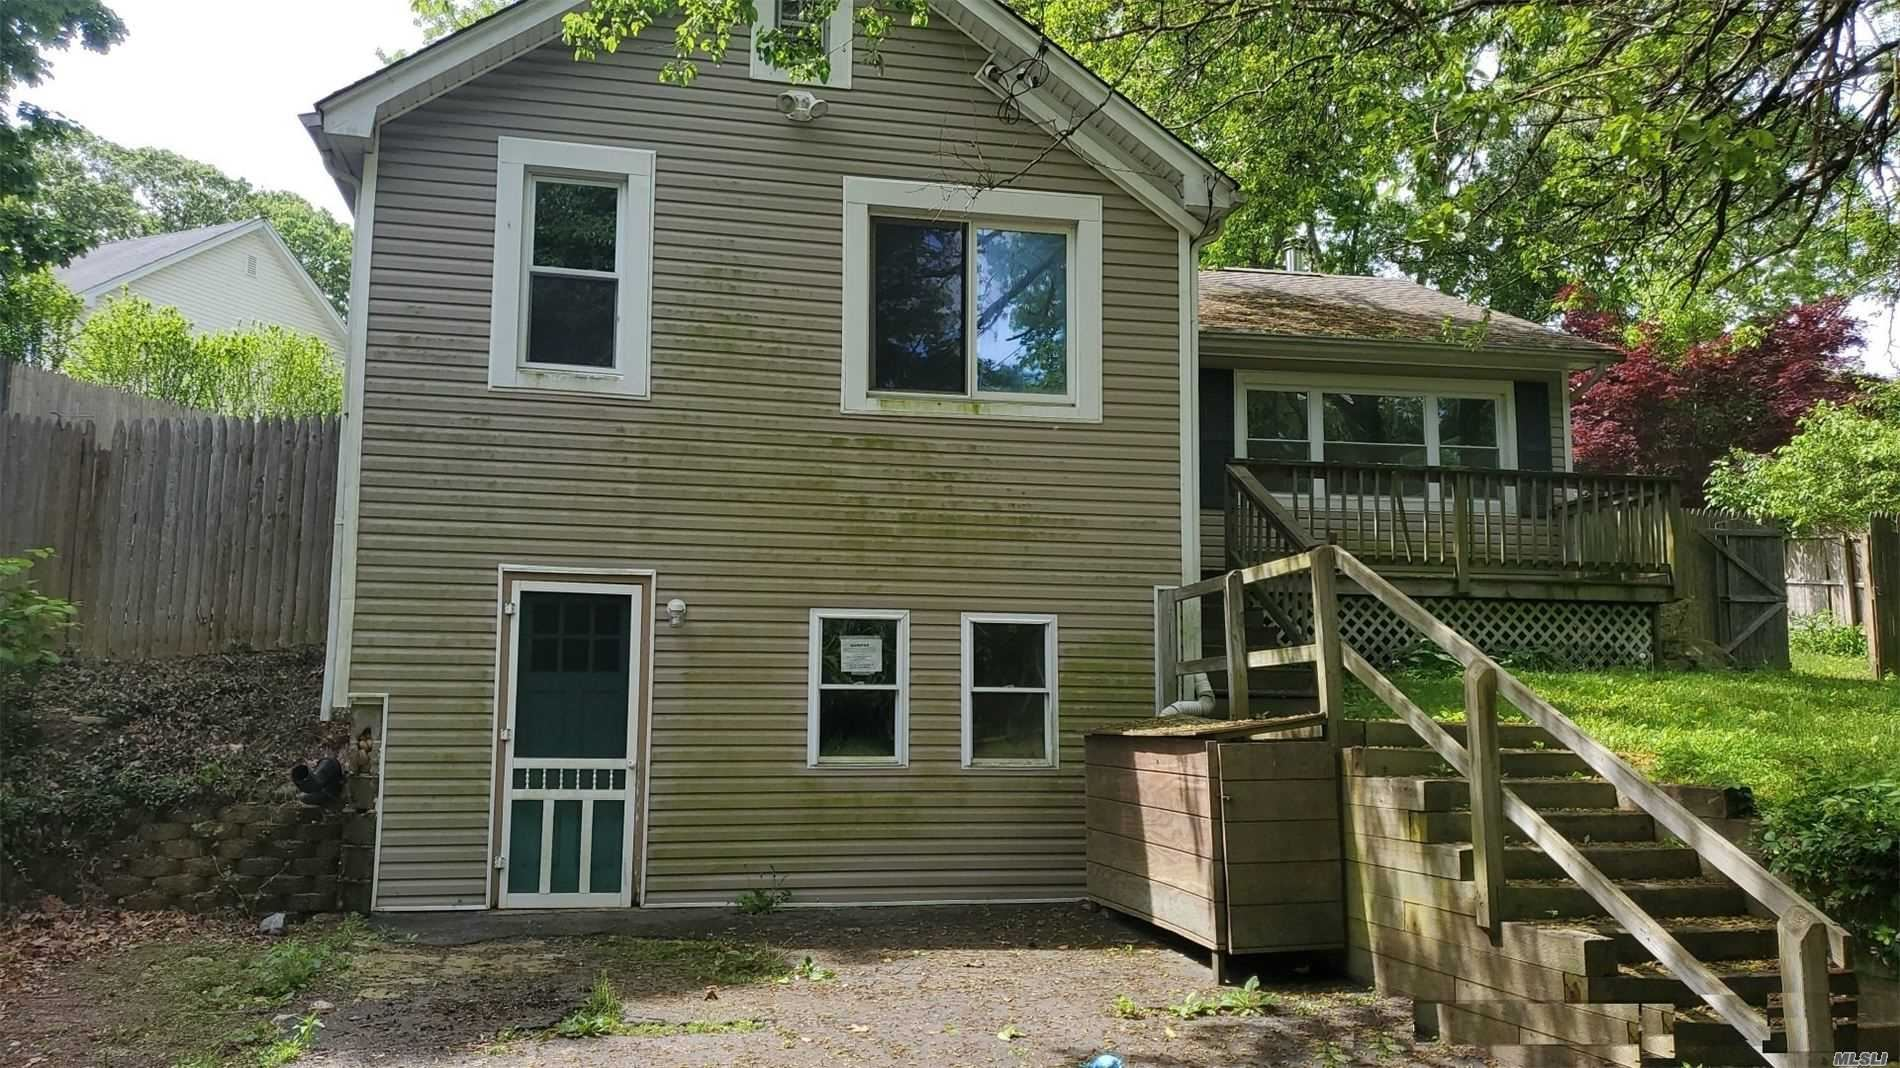 56 New York Ave, Sound Beach, NY 11789 - MLS#: 3225234